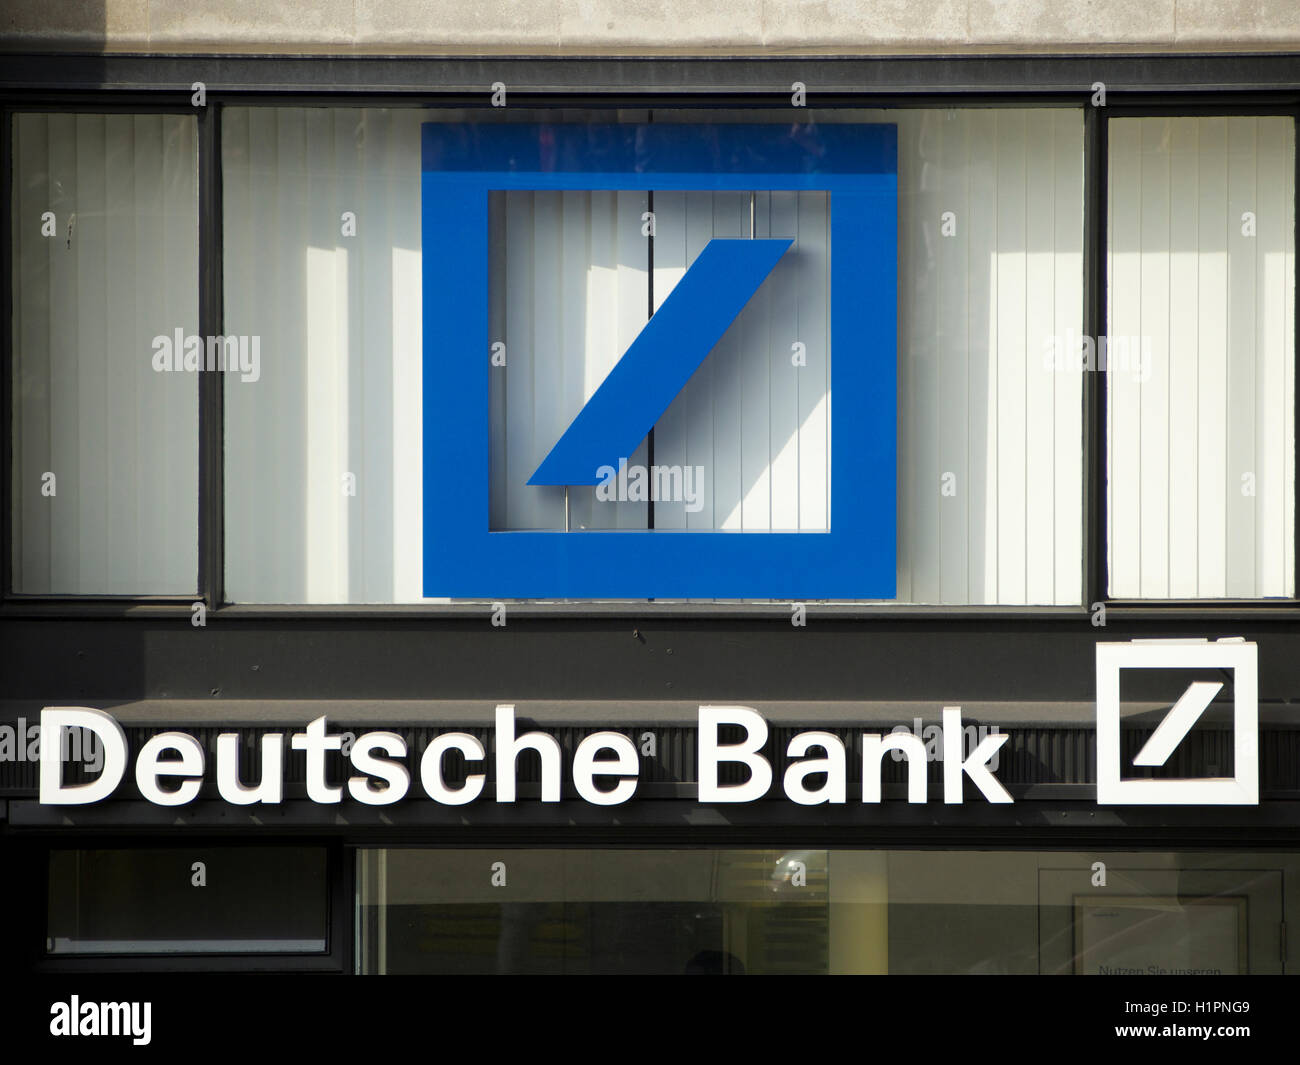 Deutsche Bank Logo photographed in the city center of Cologne, Germany - Stock Image